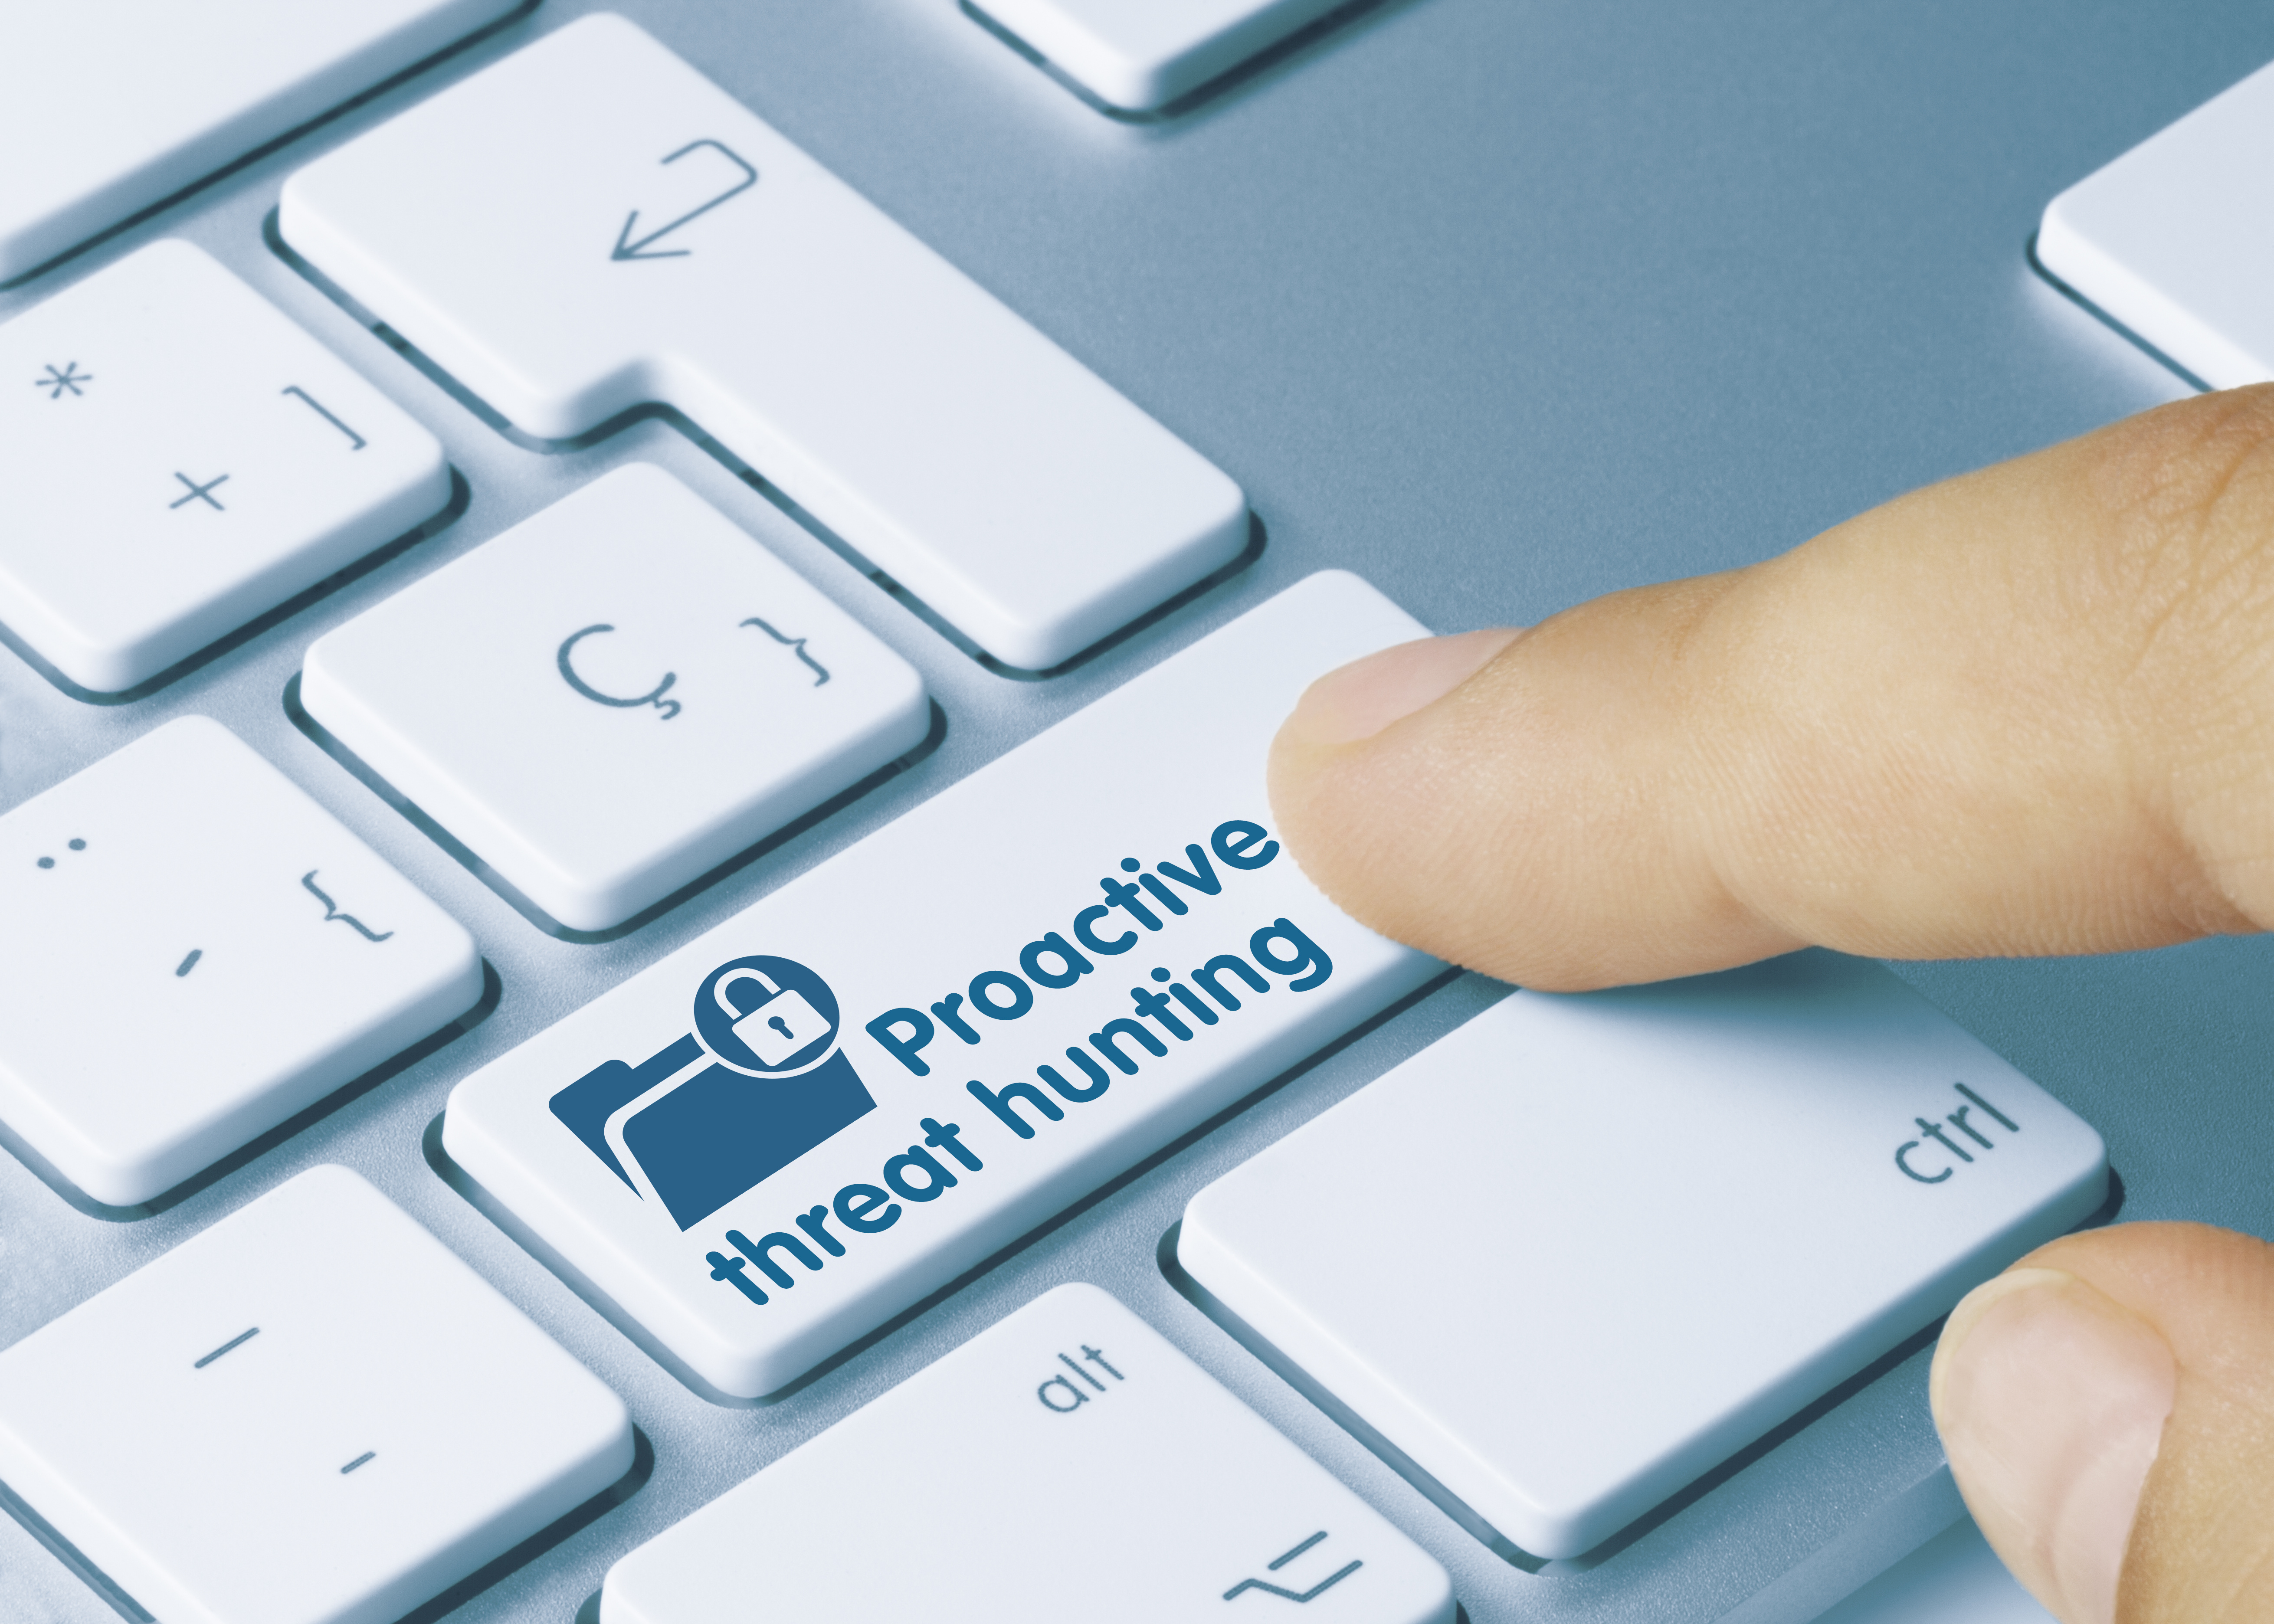 Stock photo of a finger pointing at a computer keyboard marked Proactive Threat Hunting